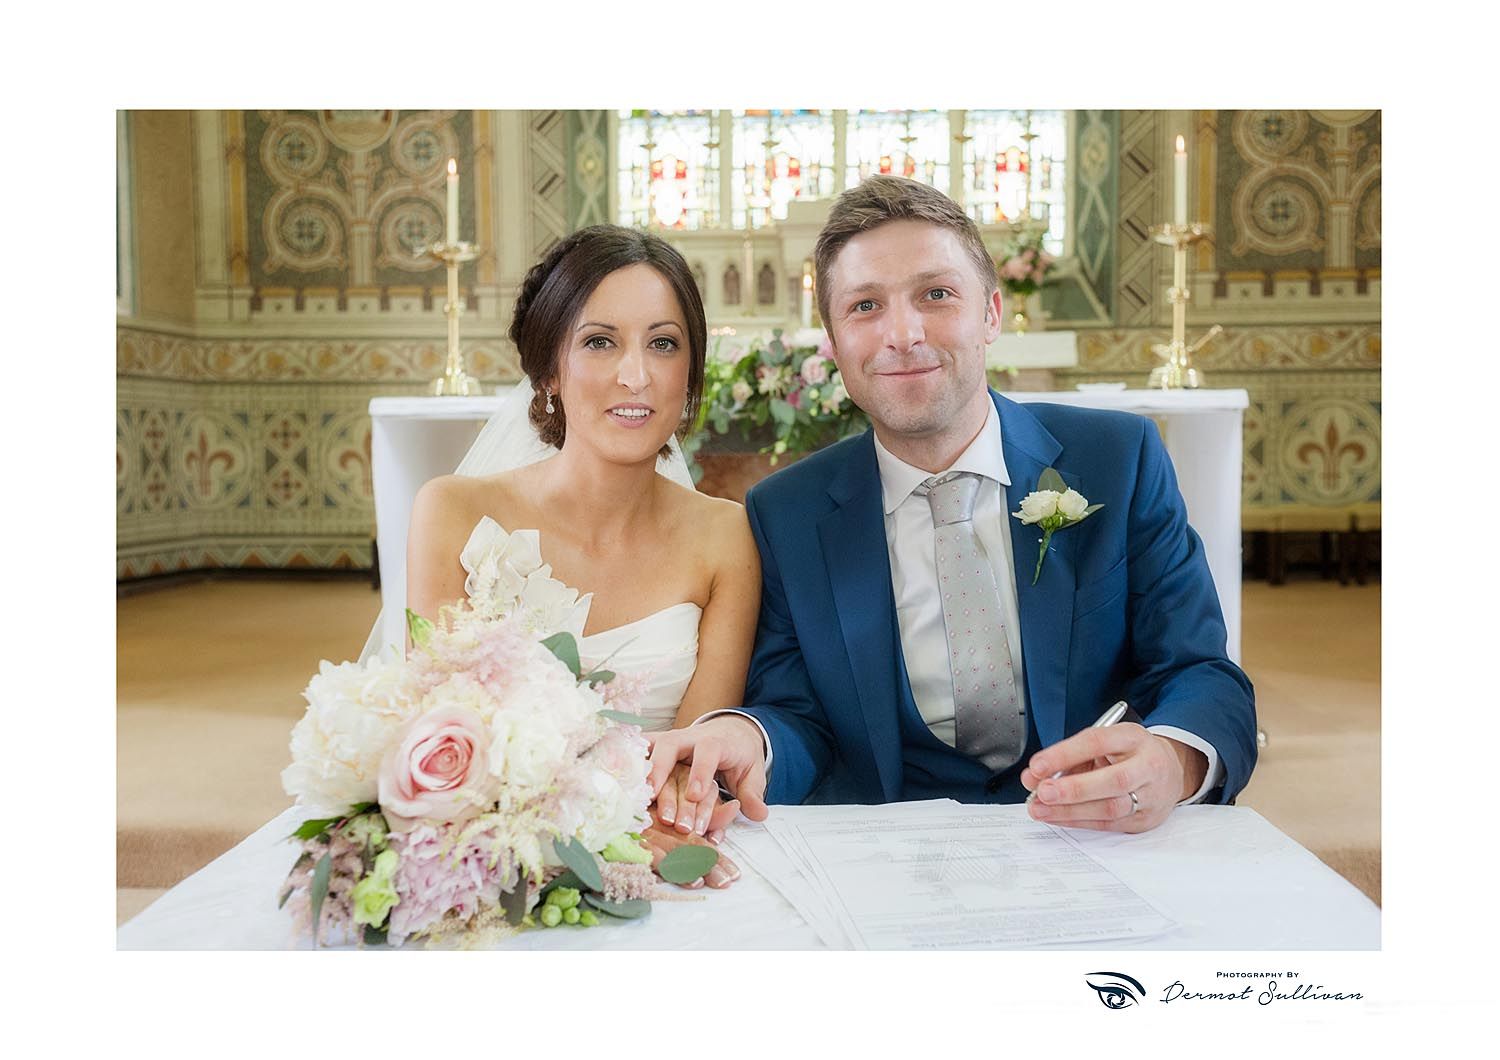 The Wedding Photos Cork Brides Like Best… Dermot Sullivan, Cork Wedding Photographer, Wedding Photography Cork, Award Winning Wedding Photography, West Cork Wedding Photography, Cork Wedding Photos, Clonakilty Wedding Photographer, Best Prices, Packages, Pictures, Best Wedding Photos,